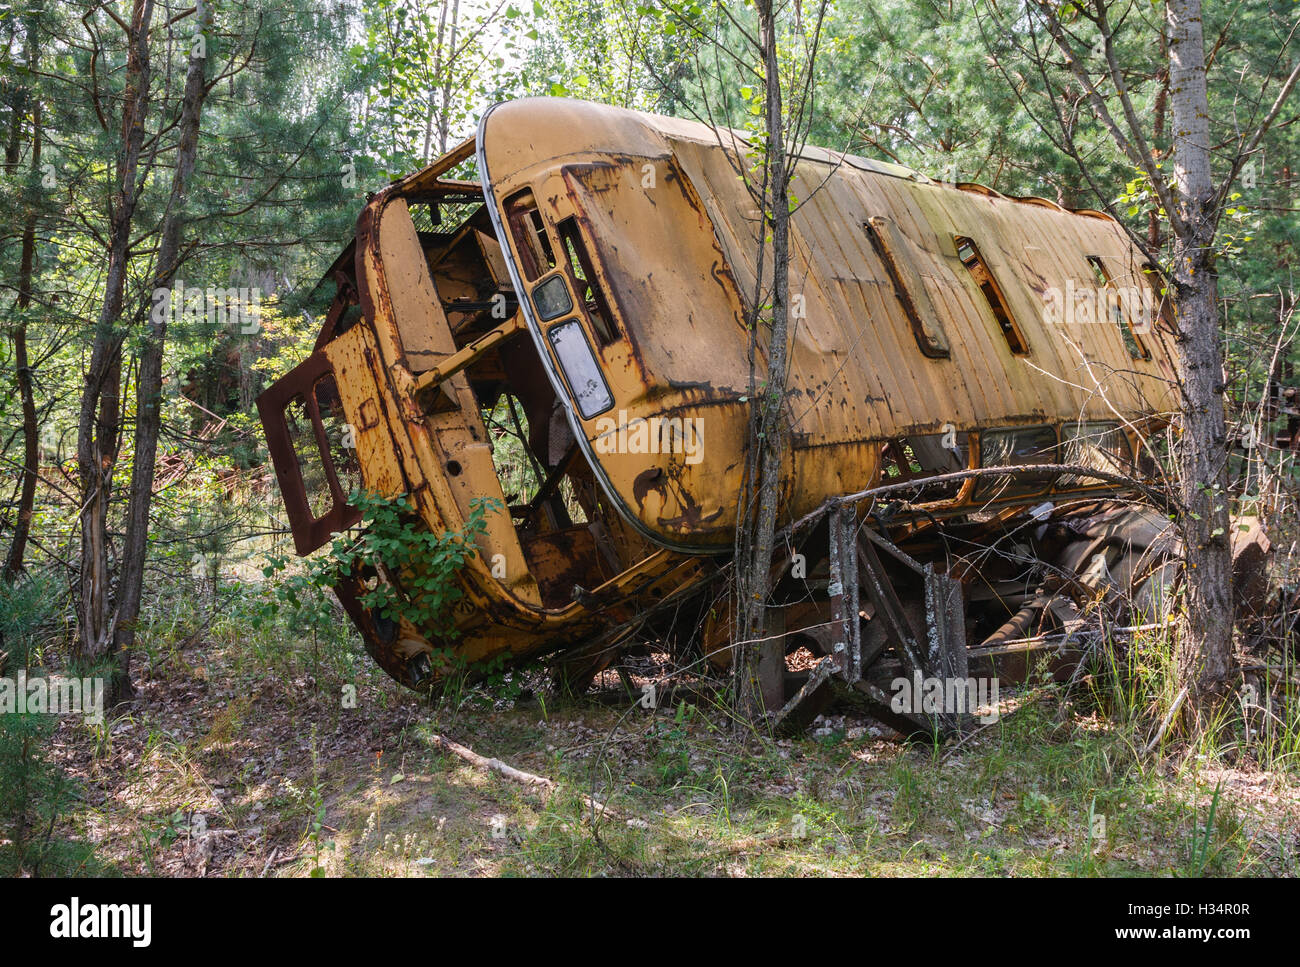 Old abandoned bus in the Chernobyl Exclusion Zone, Ukraine. - Stock Image